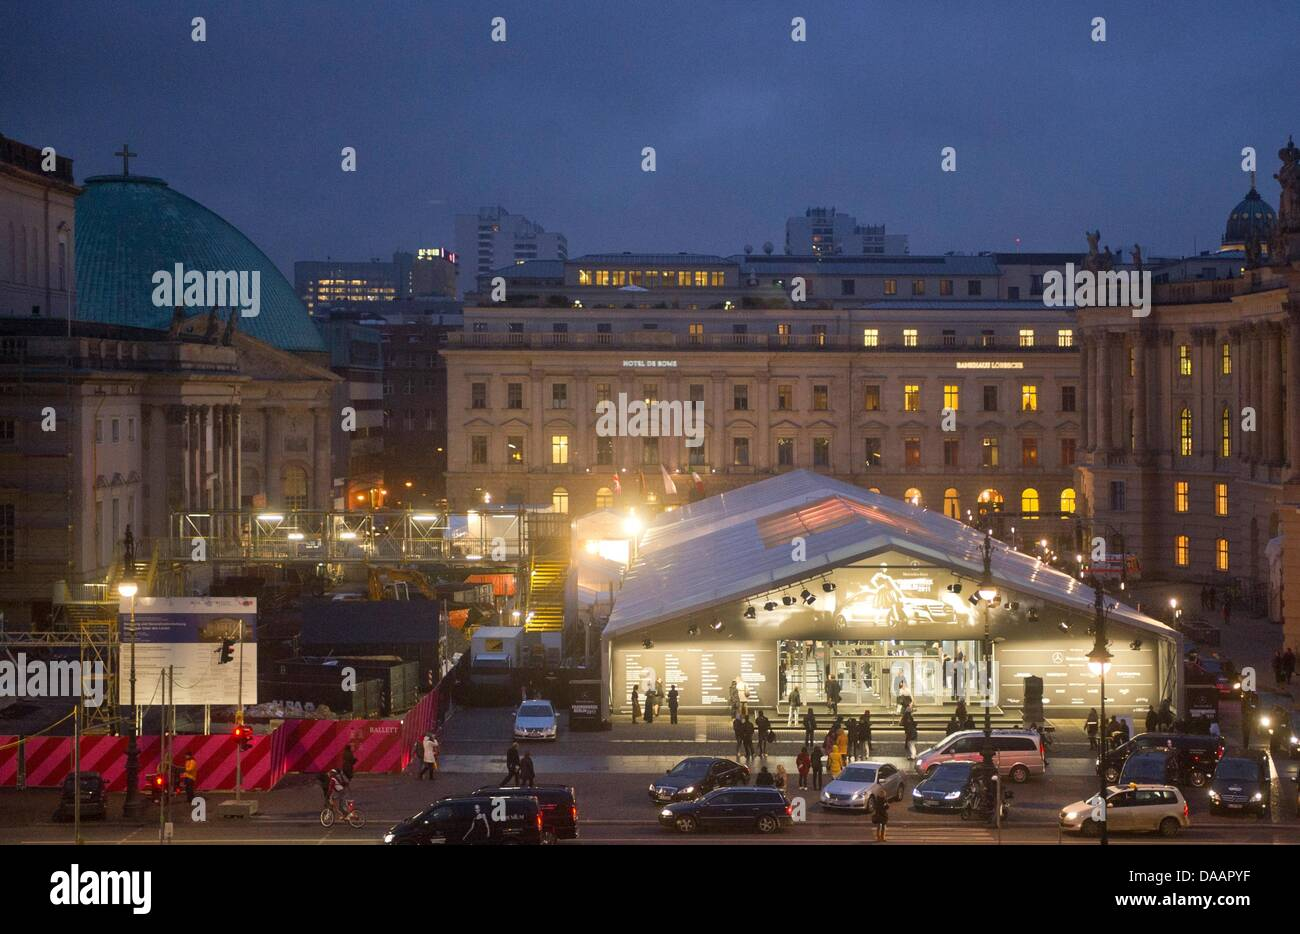 General view of the 'Bebelplatz', main location of Mercedes-Benz Fashion Week, Berlin, Germany, 21 January - Stock Image